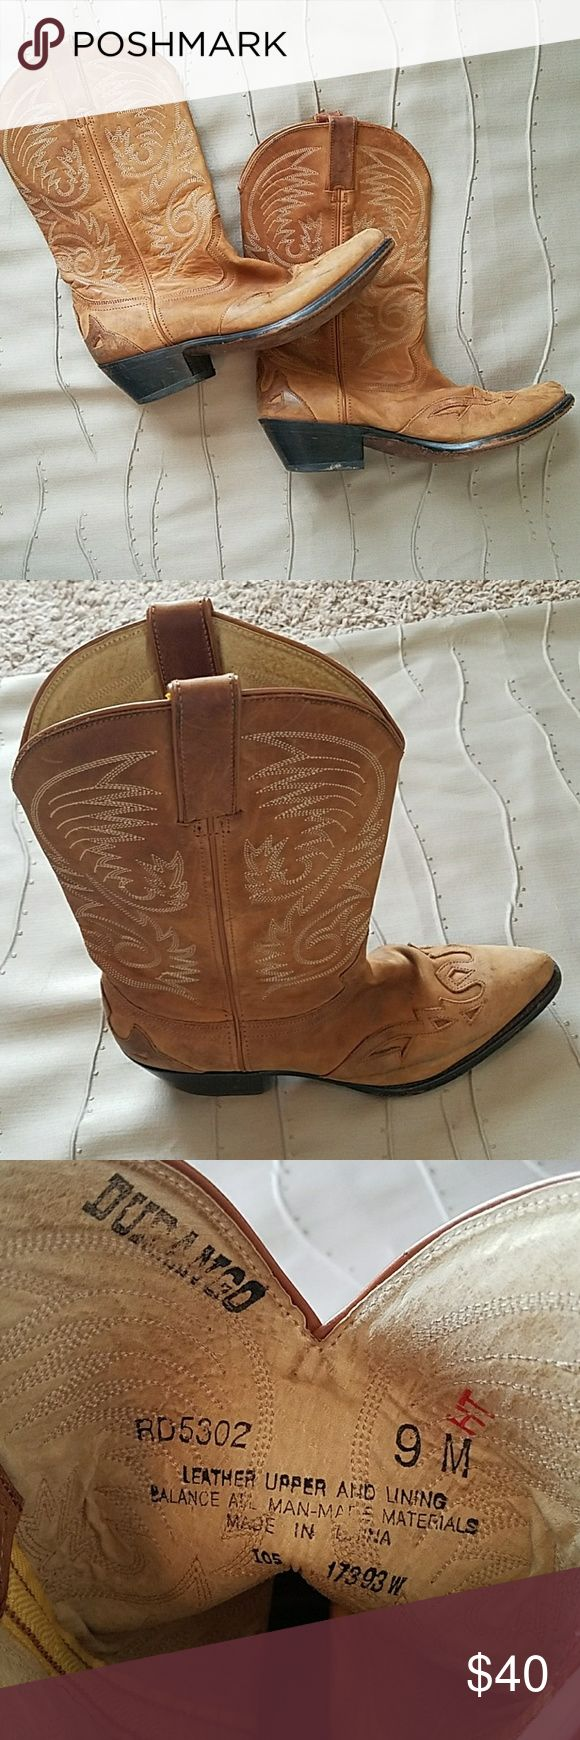 Women's Cowboy Boots Women's Durango Cowboy Boots Size 9. Really cute and comfortable worn cowboy boots. Durango Shoes Heeled Boots